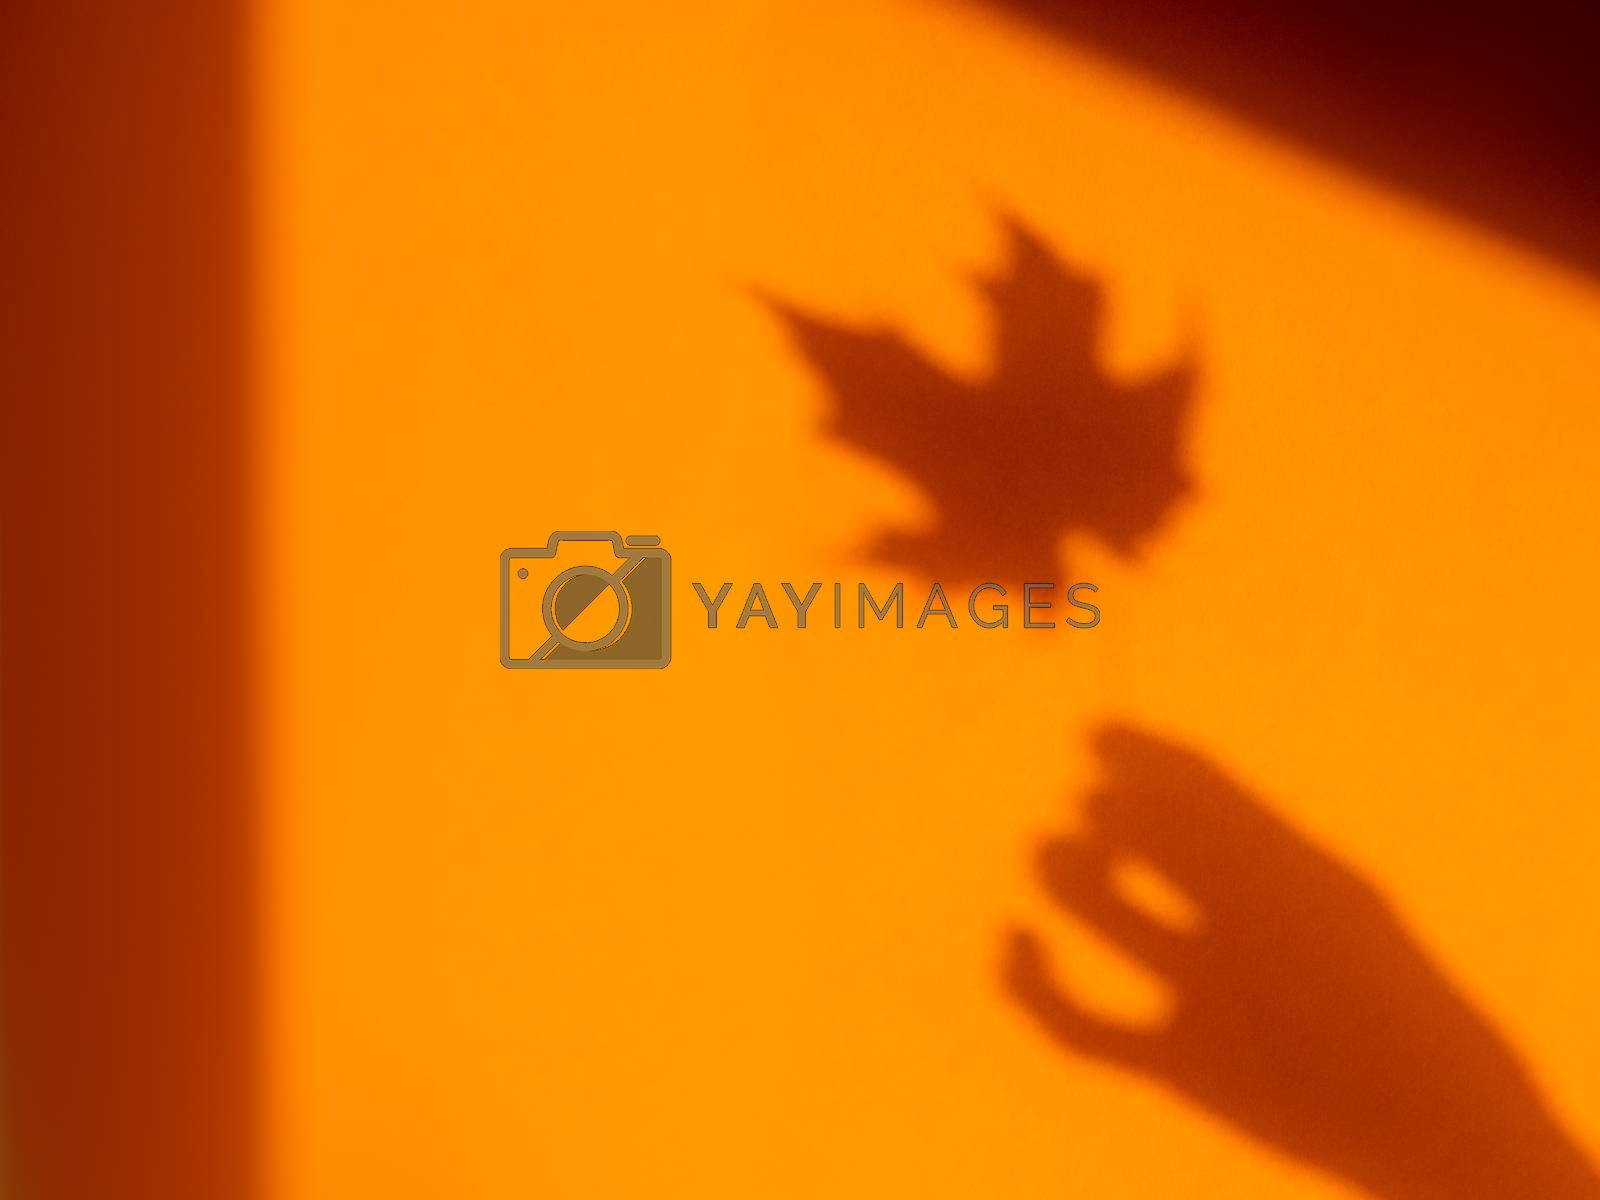 Shadows of woman hand with autumn maple leaf on bright orange wall. Hard sunlight, elegant gesture and fragile plant. Monochrome geometry with light and shadow. Minimalism. Fall season.